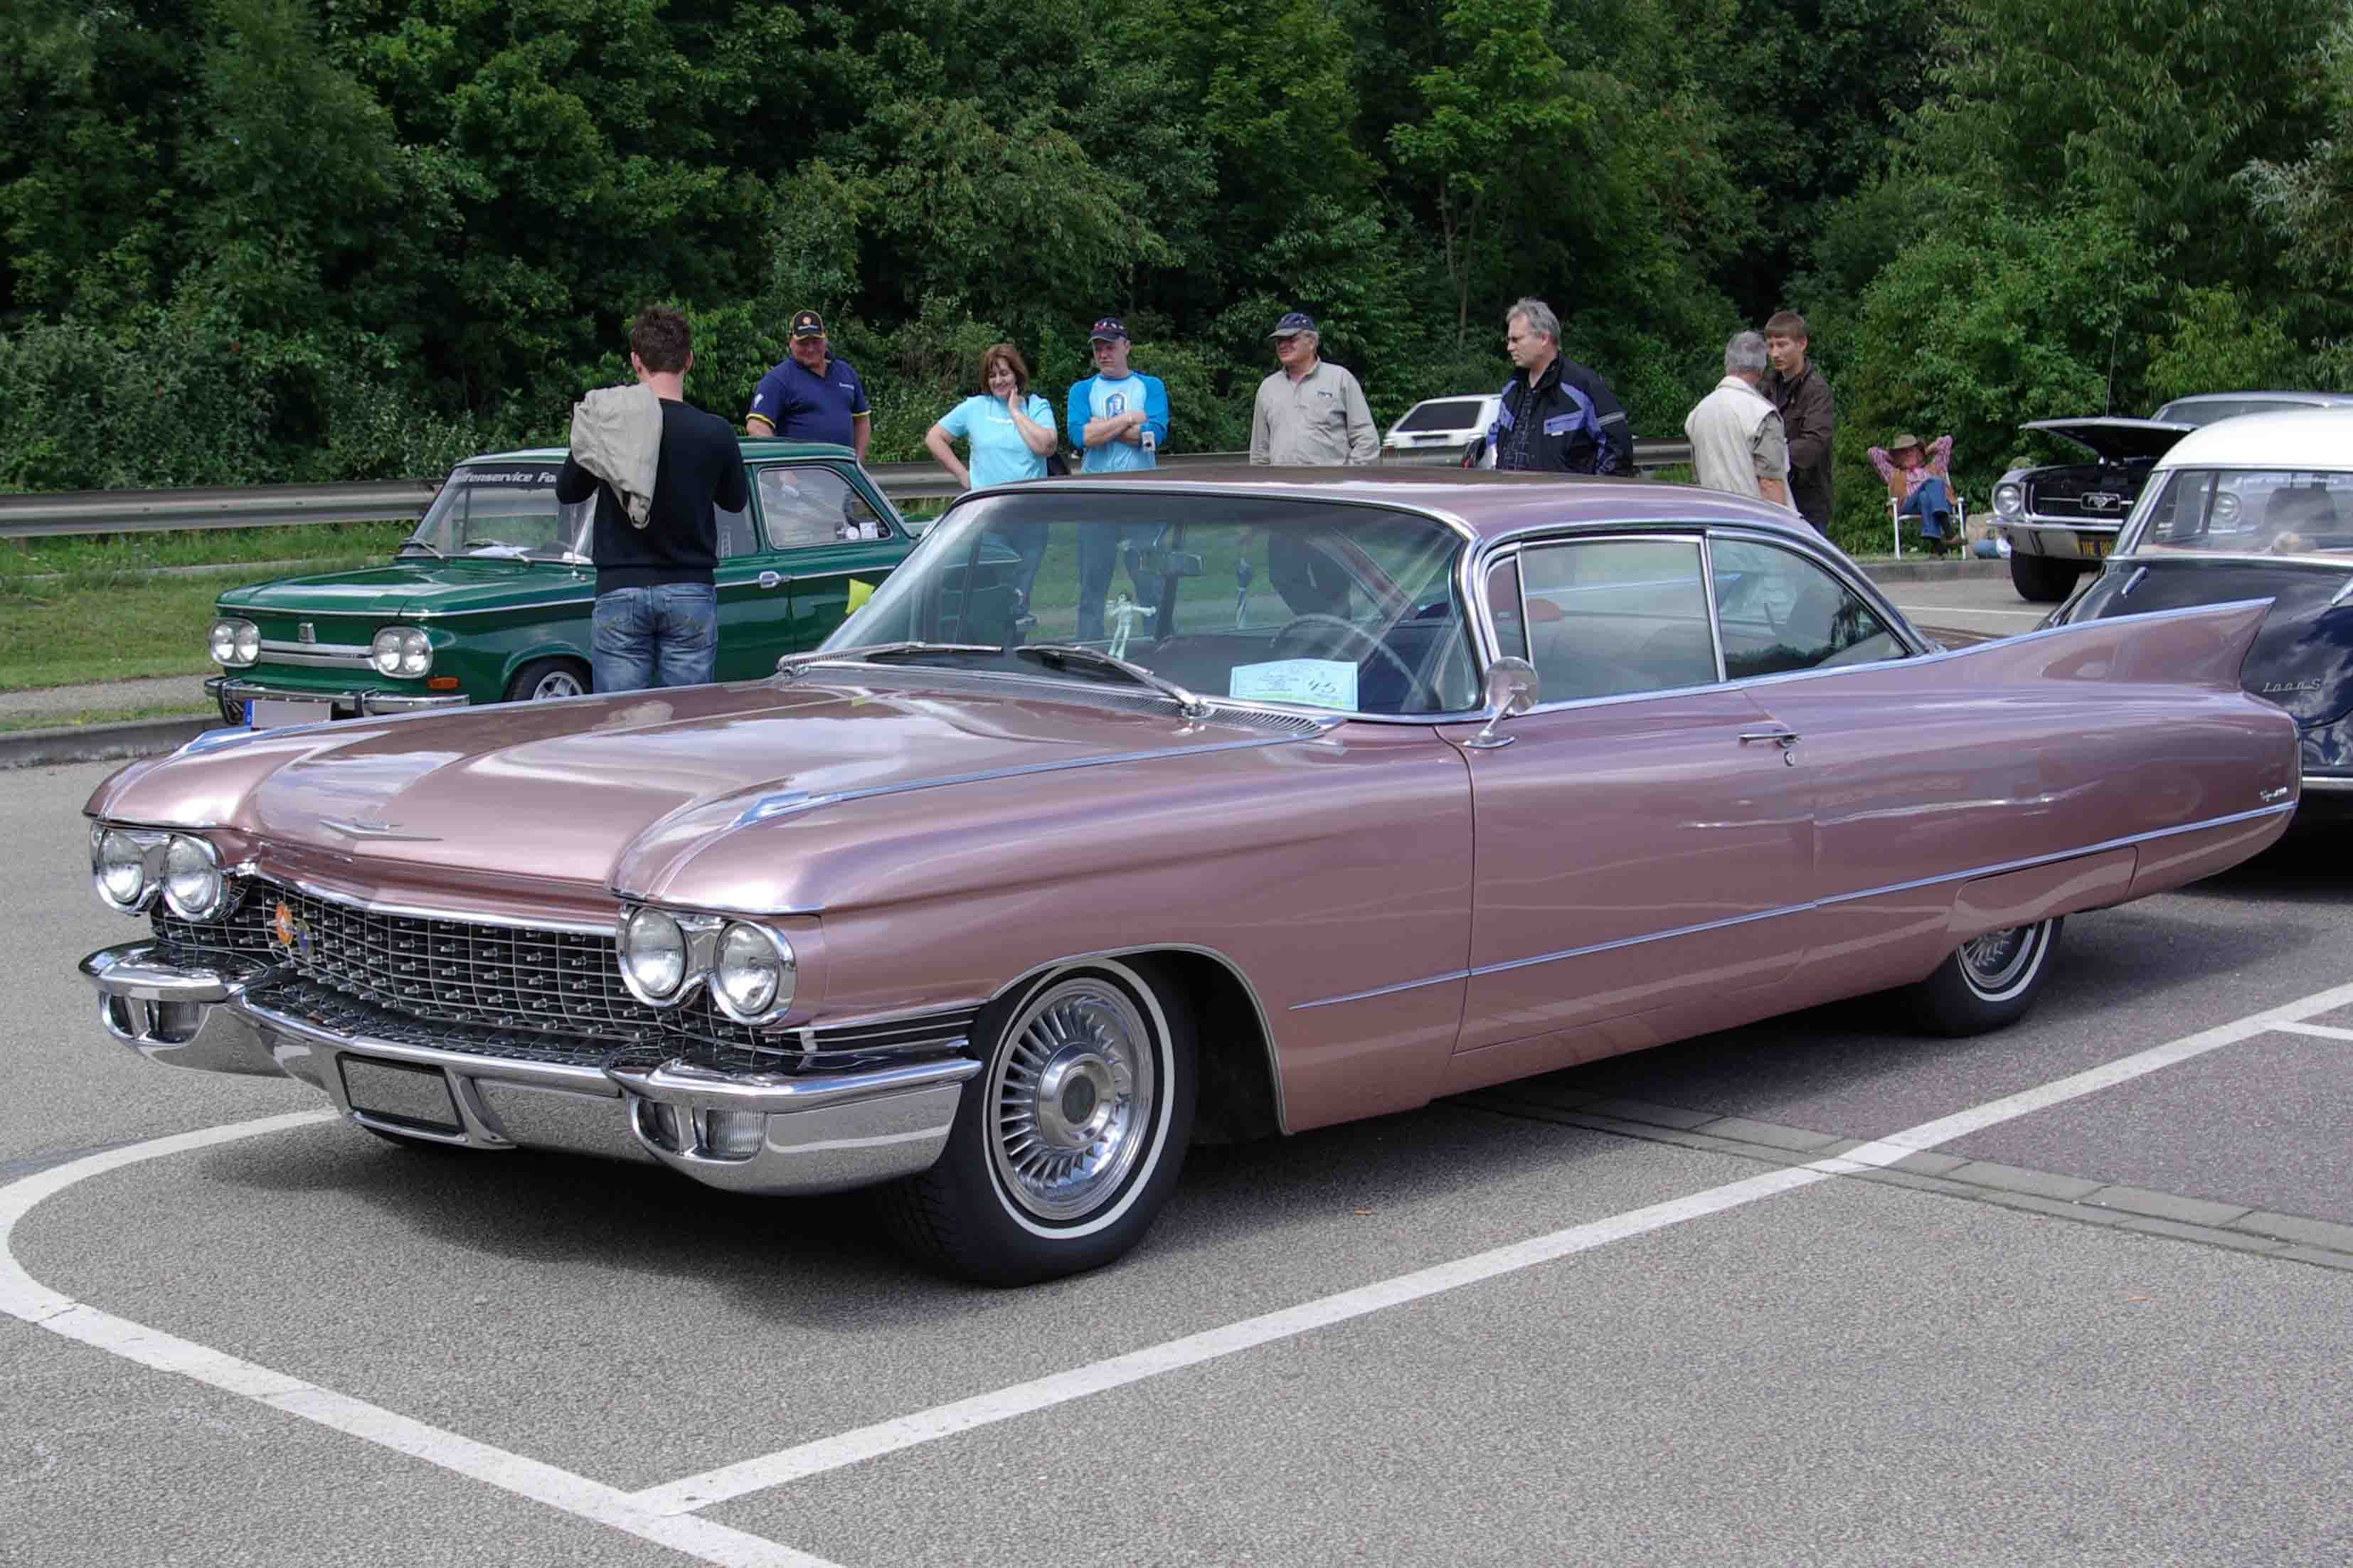 cadillac coupe deville classic | Cool Daily Car | Pinterest ...